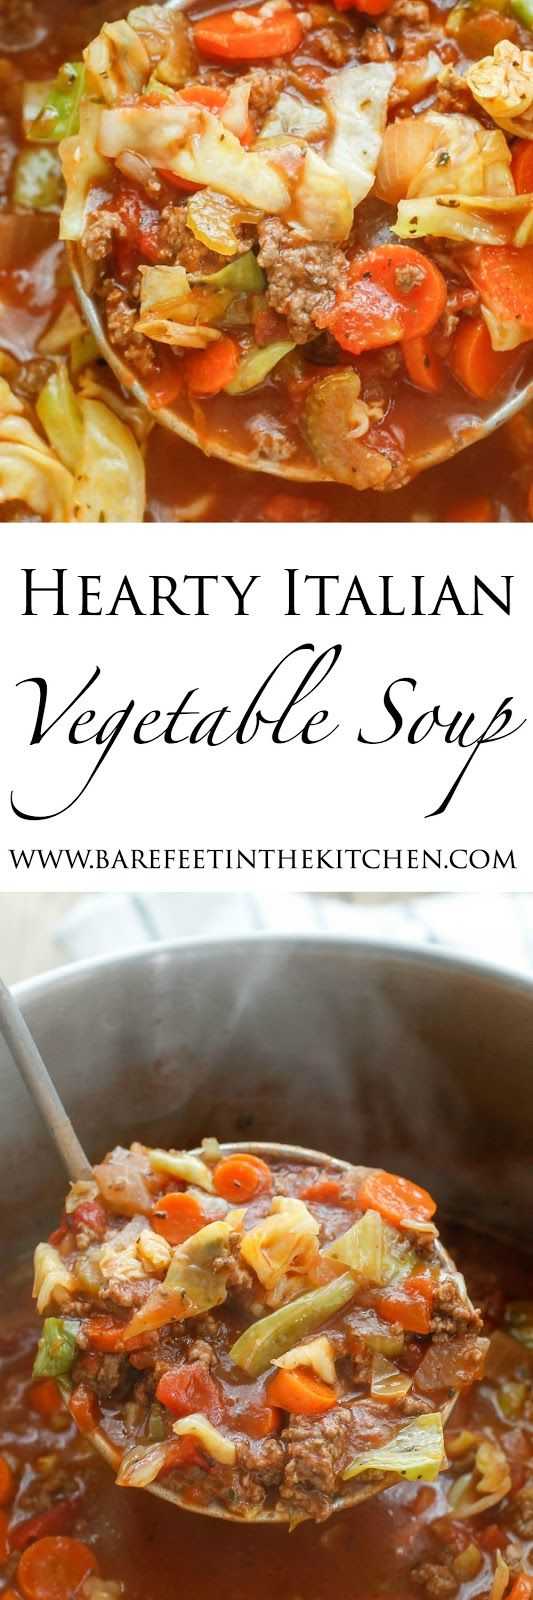 Hearty Italian Vegetable Beef Soup recipe filled with chunks of ground beef, plenty of vegetables, and generous Italian spices,